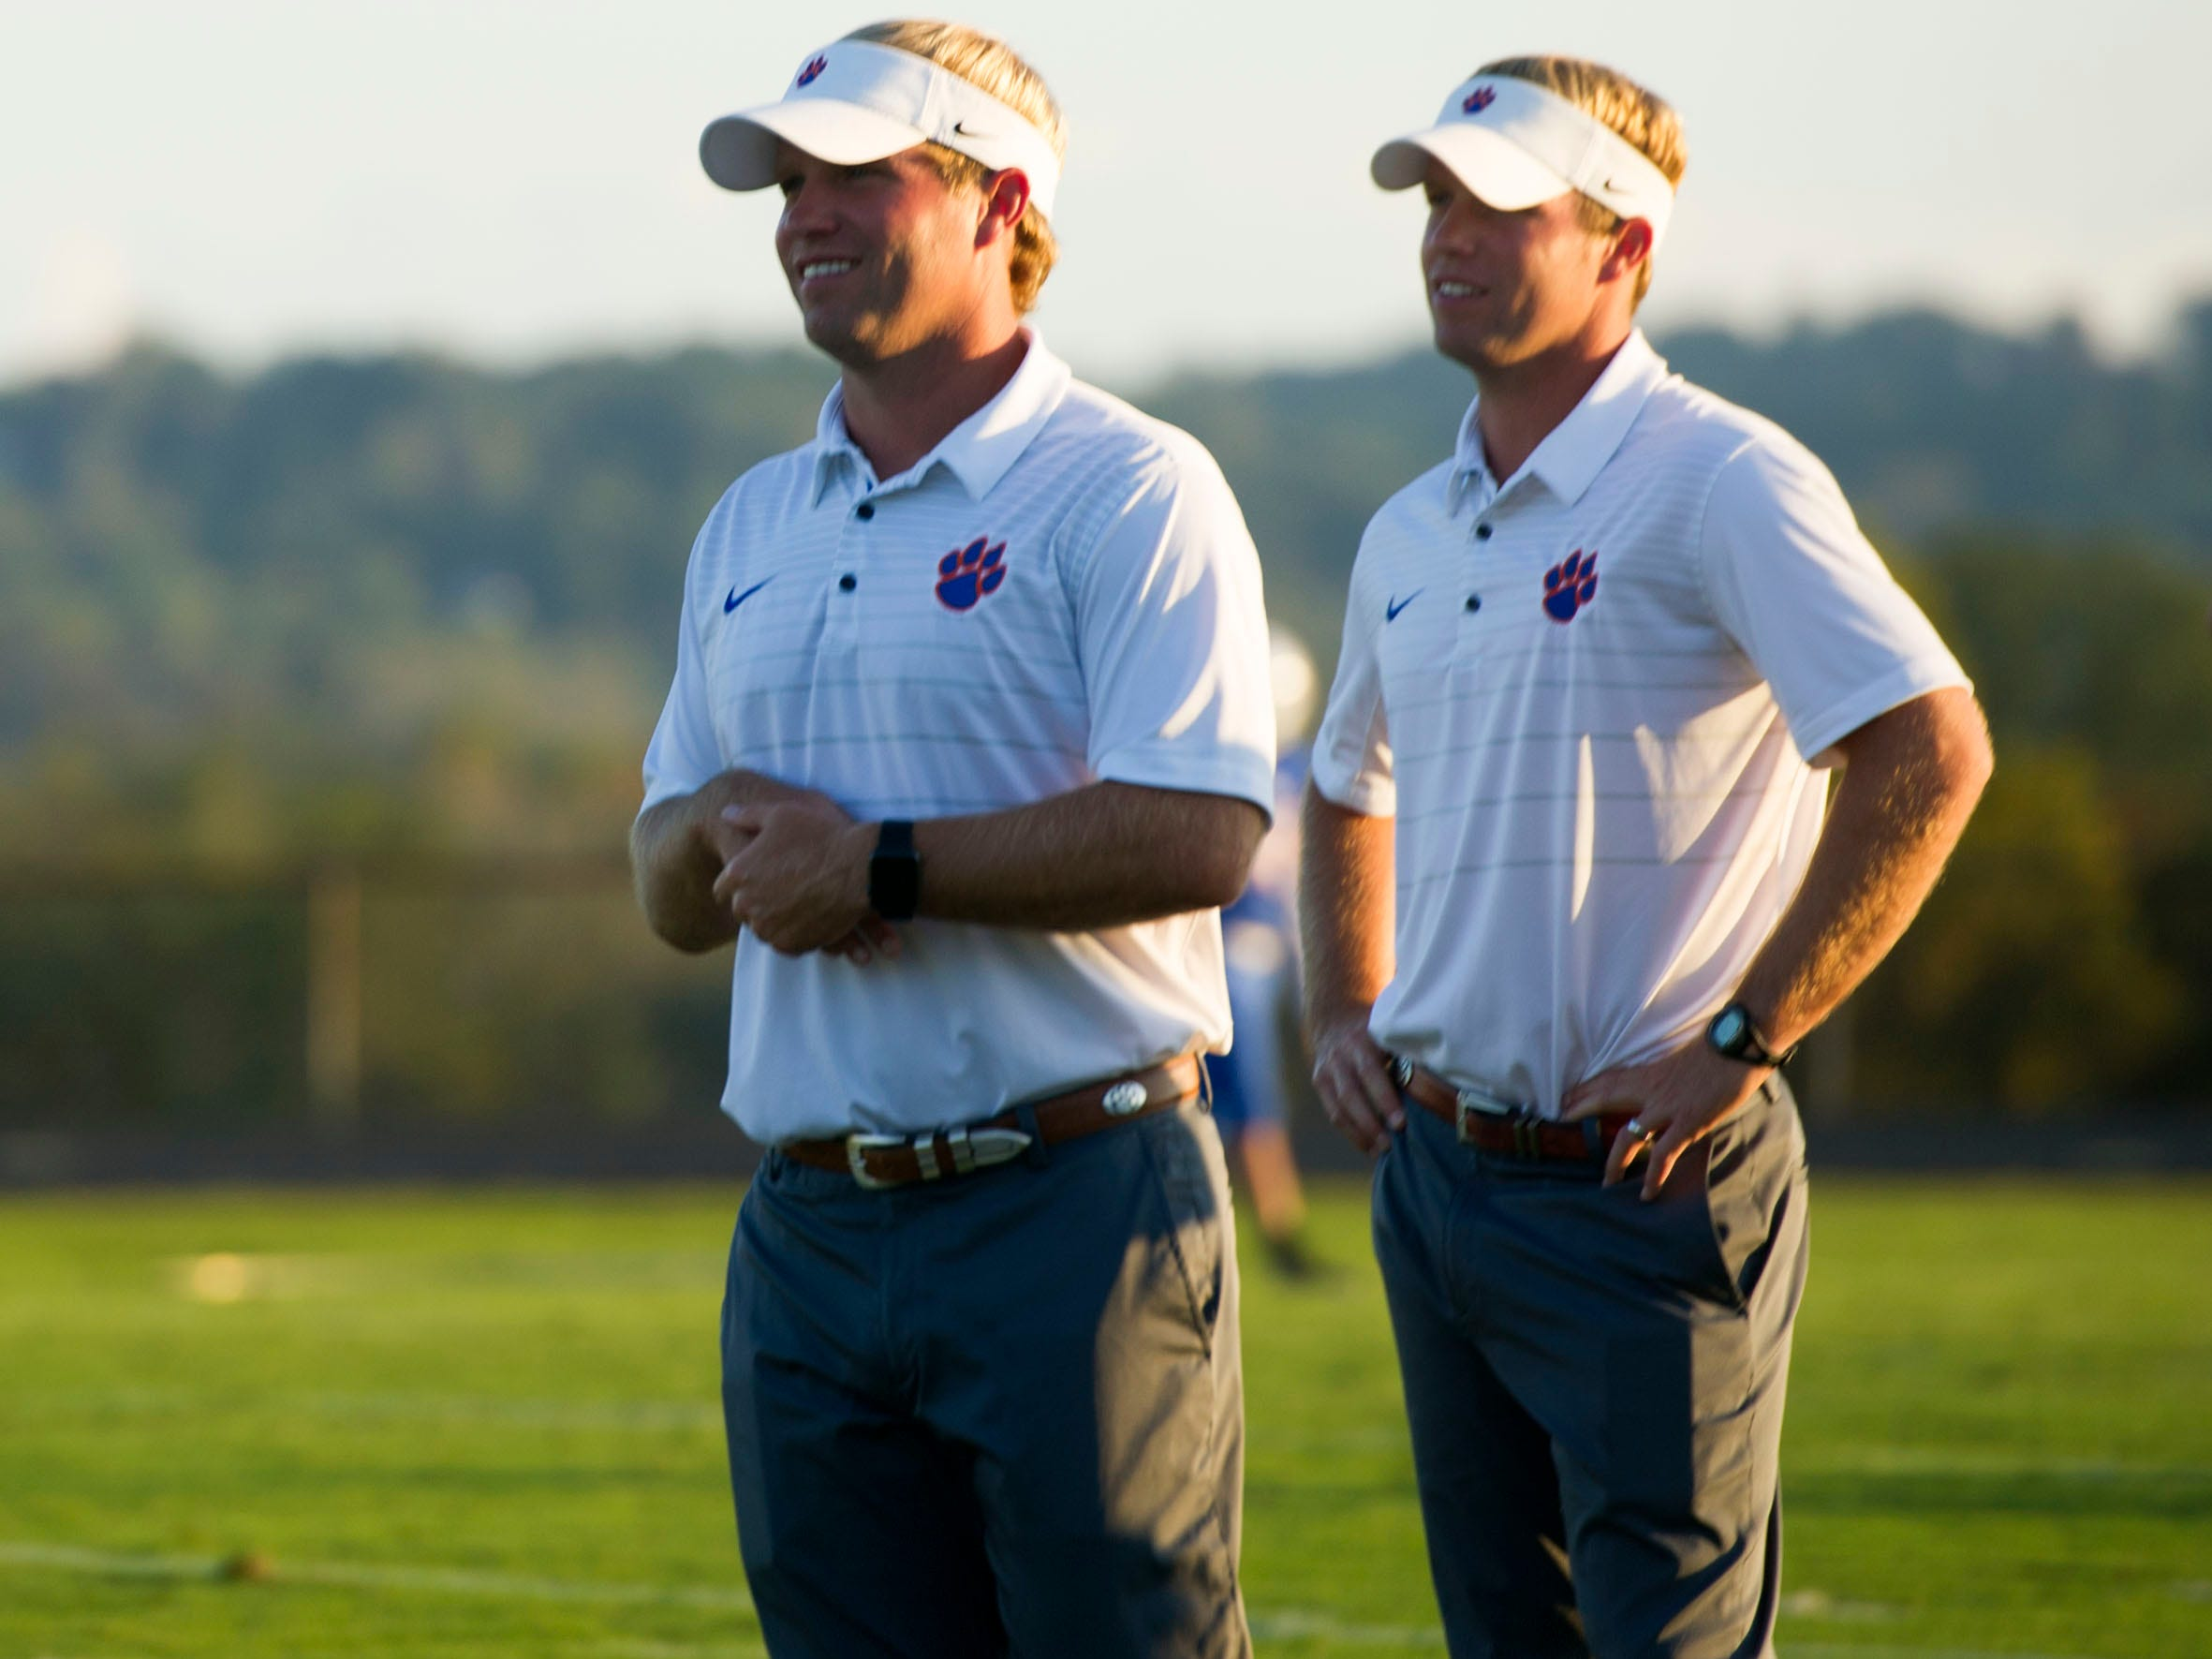 Campbell County coaches, brothers, Matt, left, and Justin Price before the start of the game against Fulton at Campbell County on Friday, October 13, 2017.